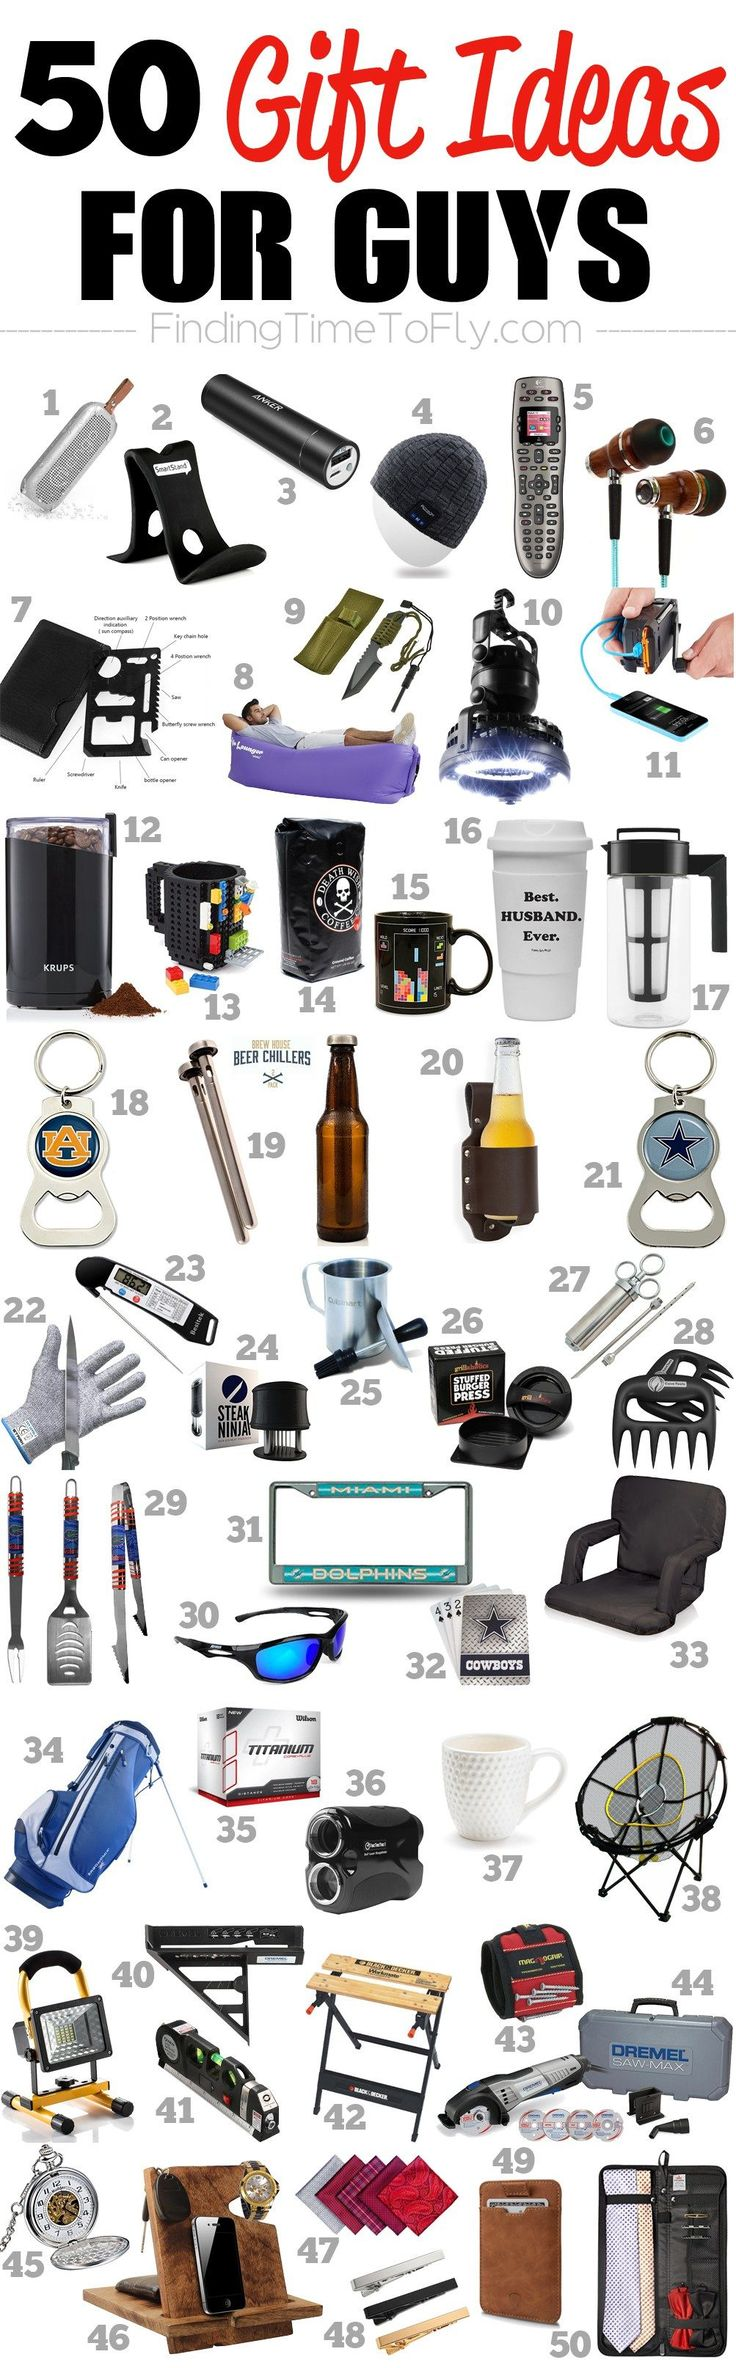 77 Best Male Teacher Gift Ideas Images On Pinterest Gift